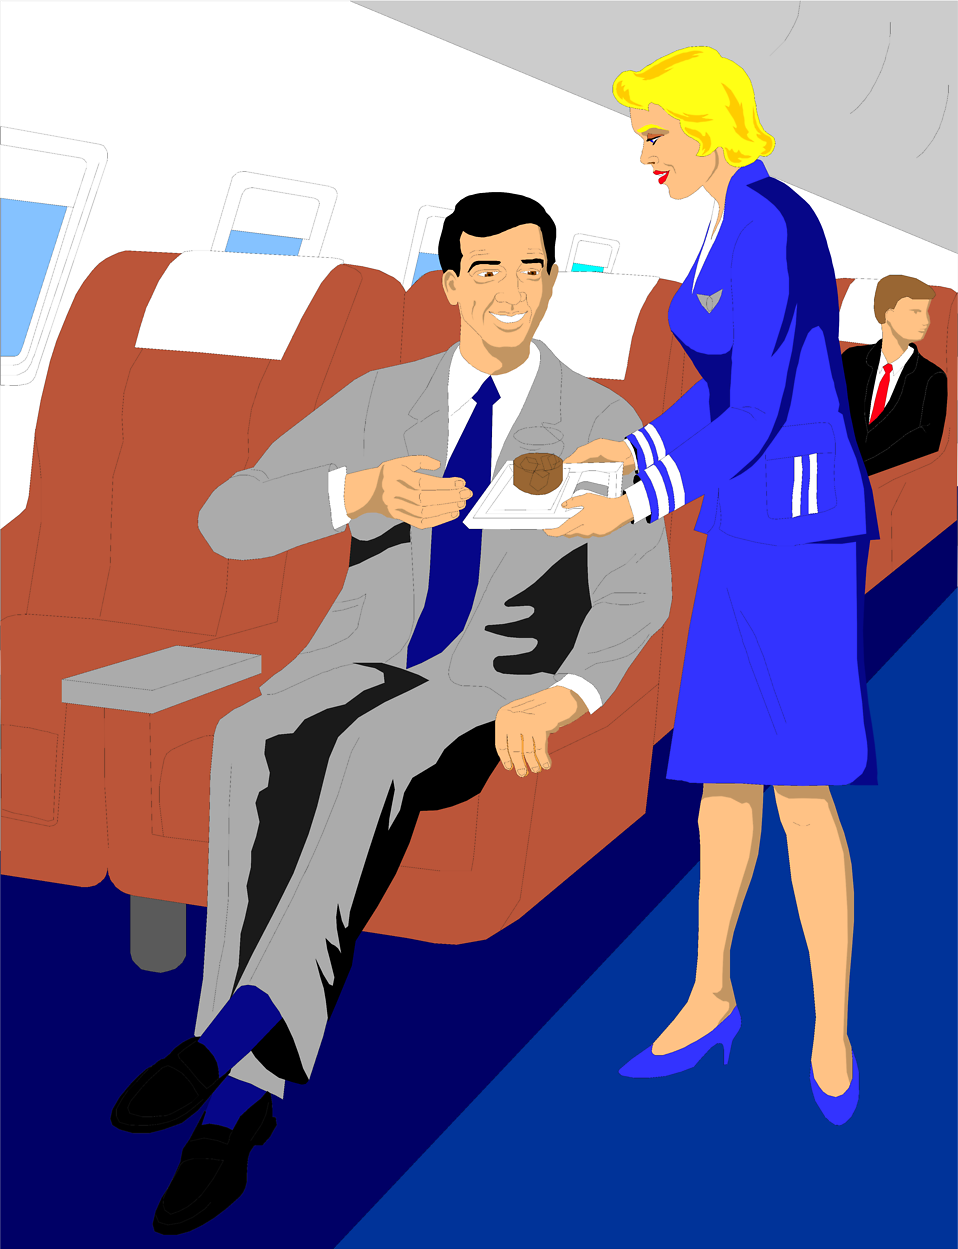 Illustration of a businessman being served a drink on a plane : Free Stock Photo